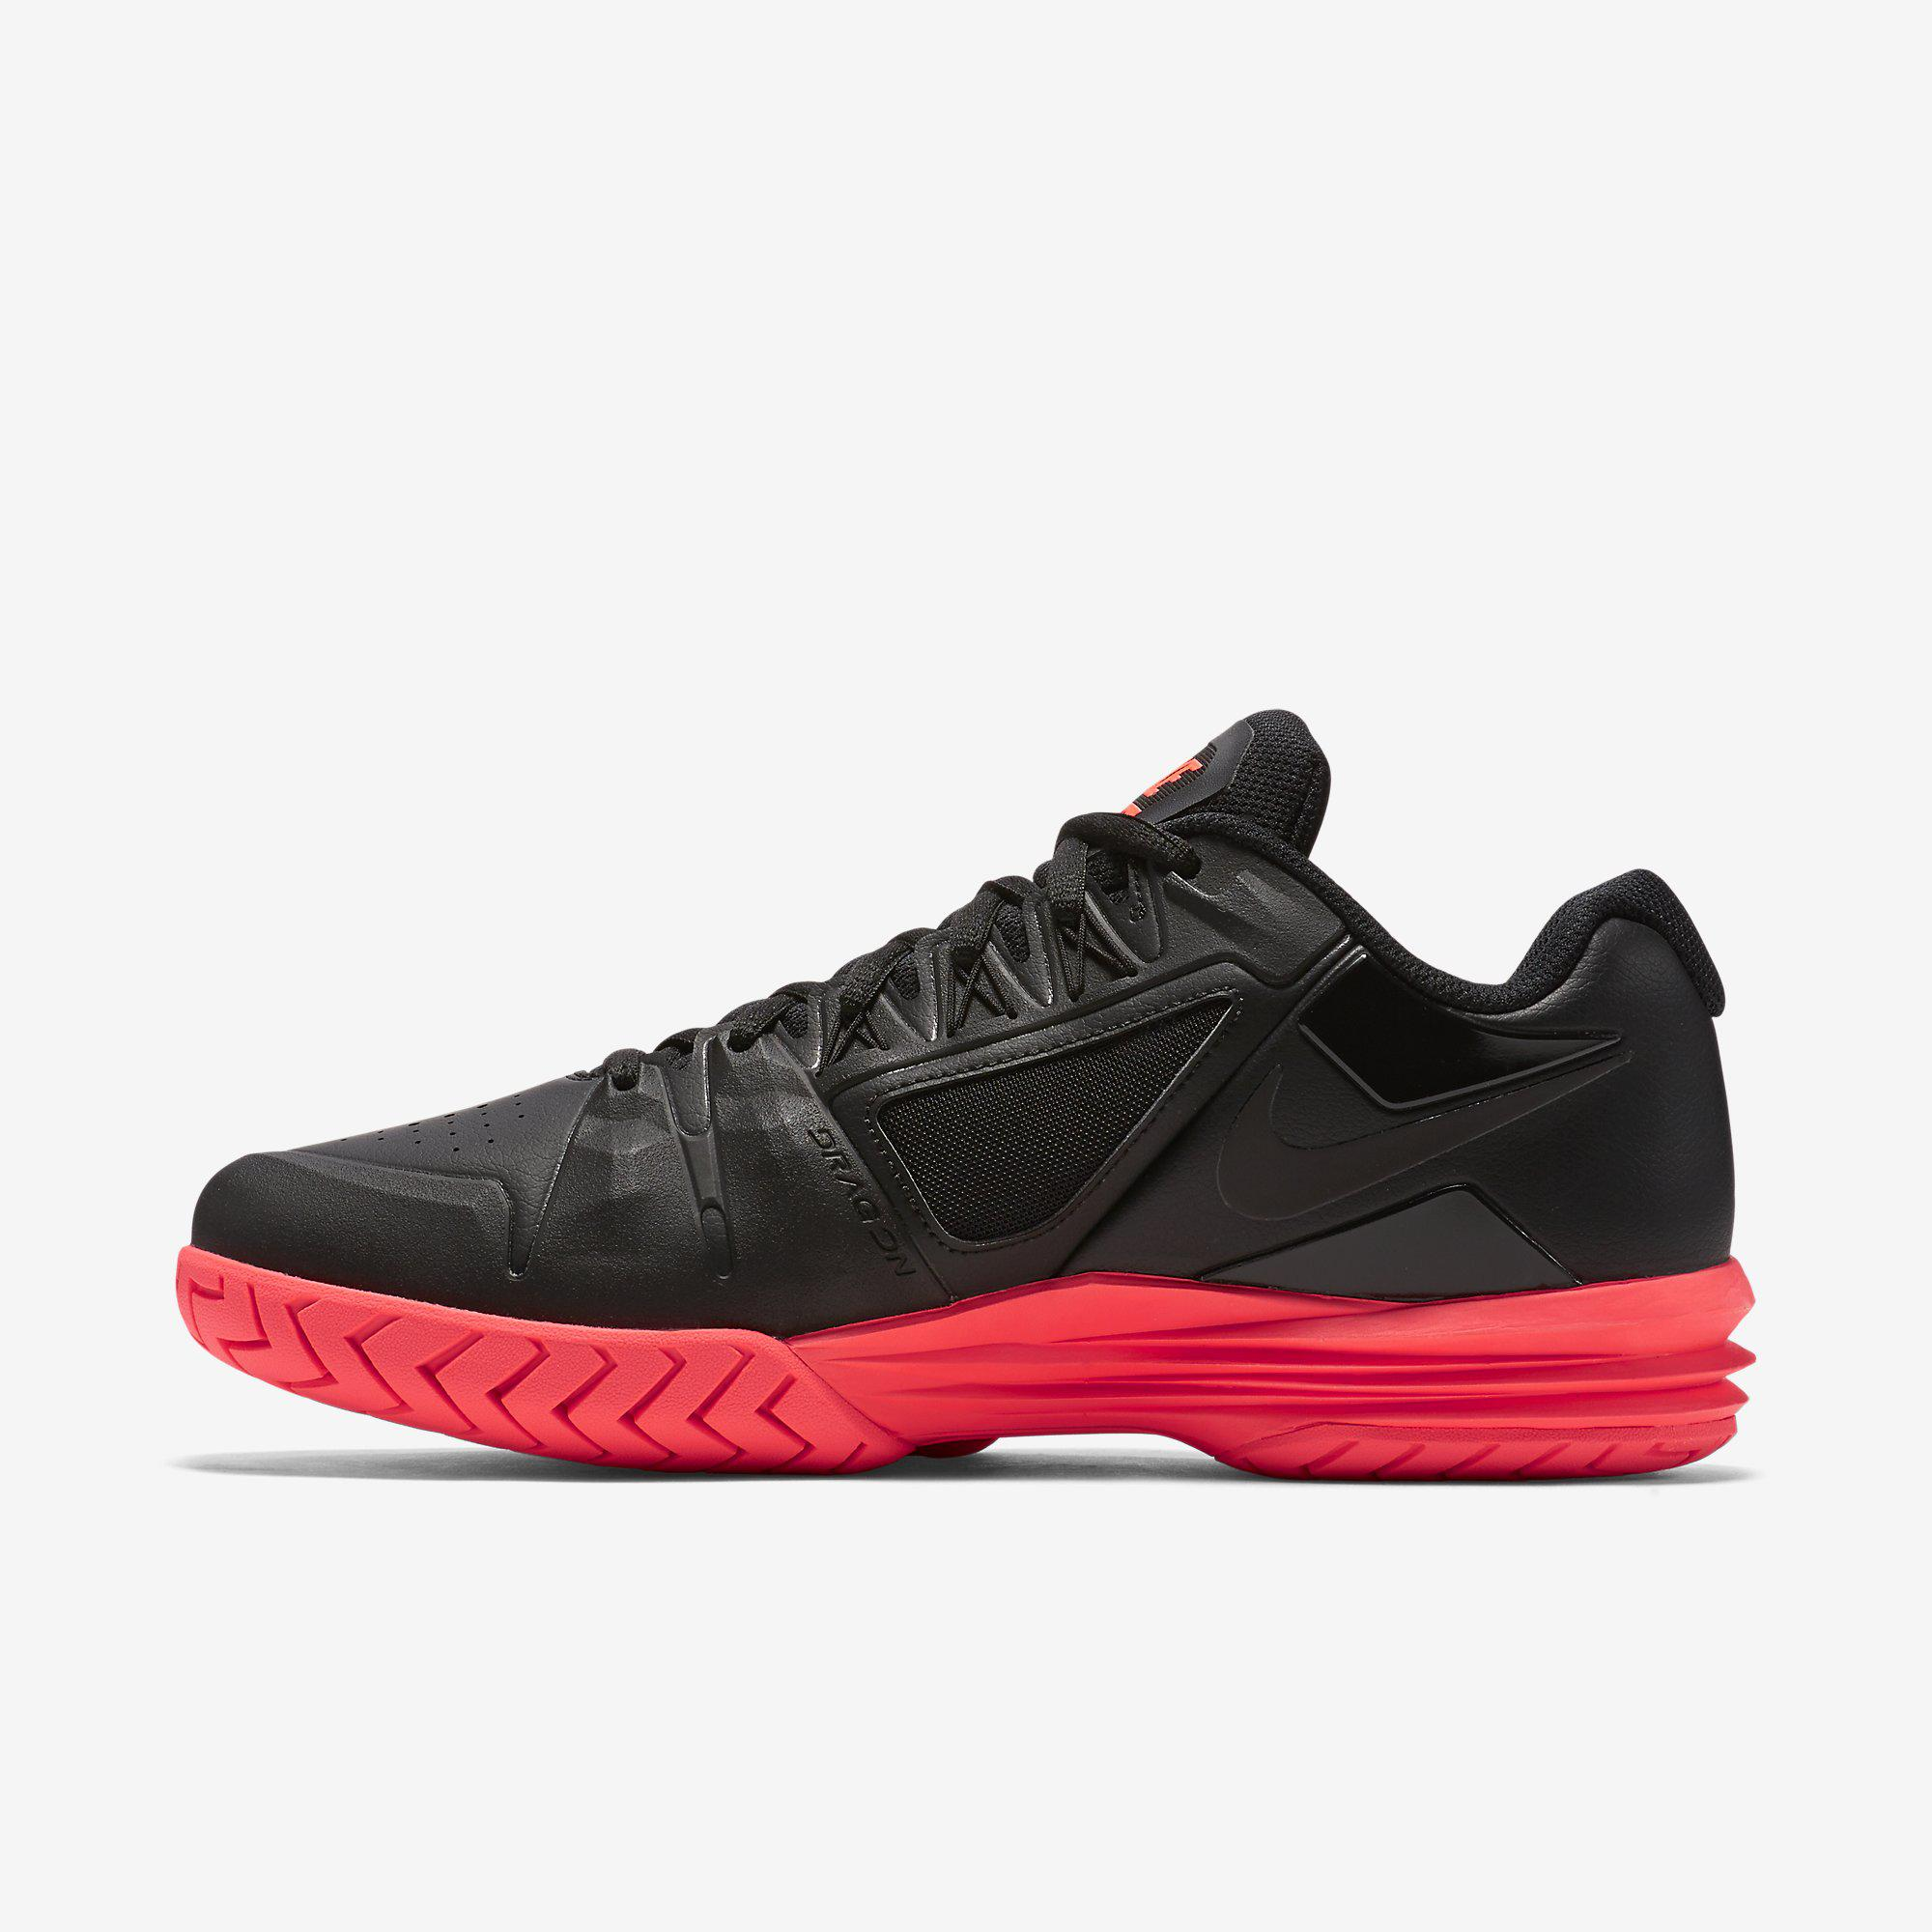 af5dec0288b9 Nike Mens Lunar Ballistec 1.5 Tennis Shoes - Black Hot Lava ...